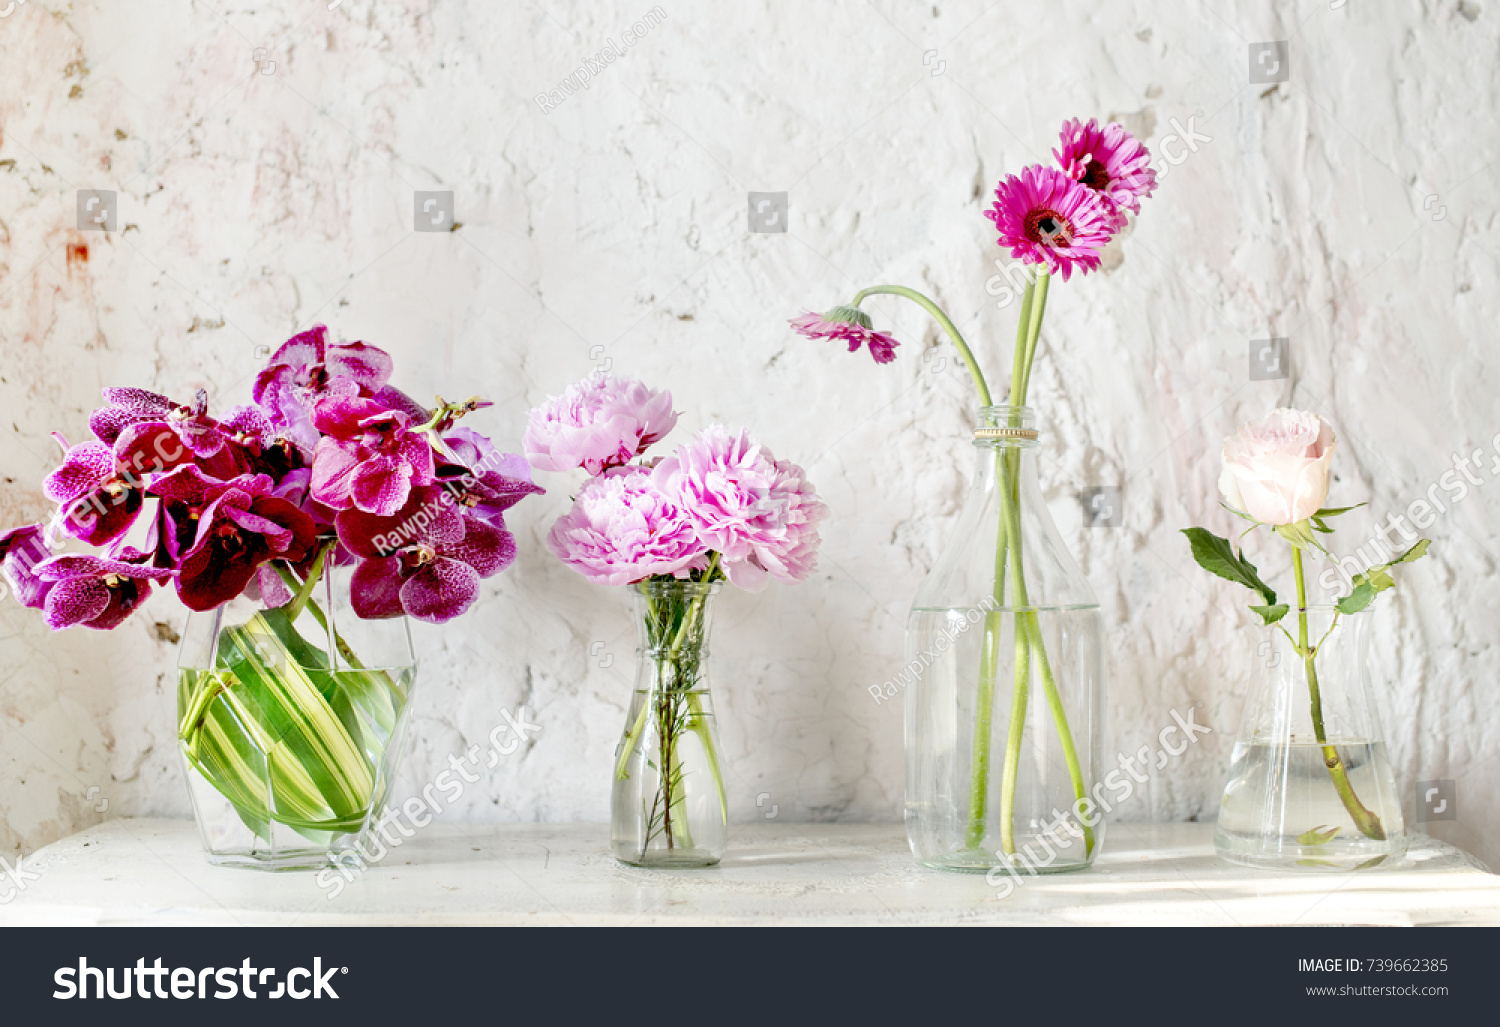 A Row Of Vases With Pink Flowers Ez Canvas